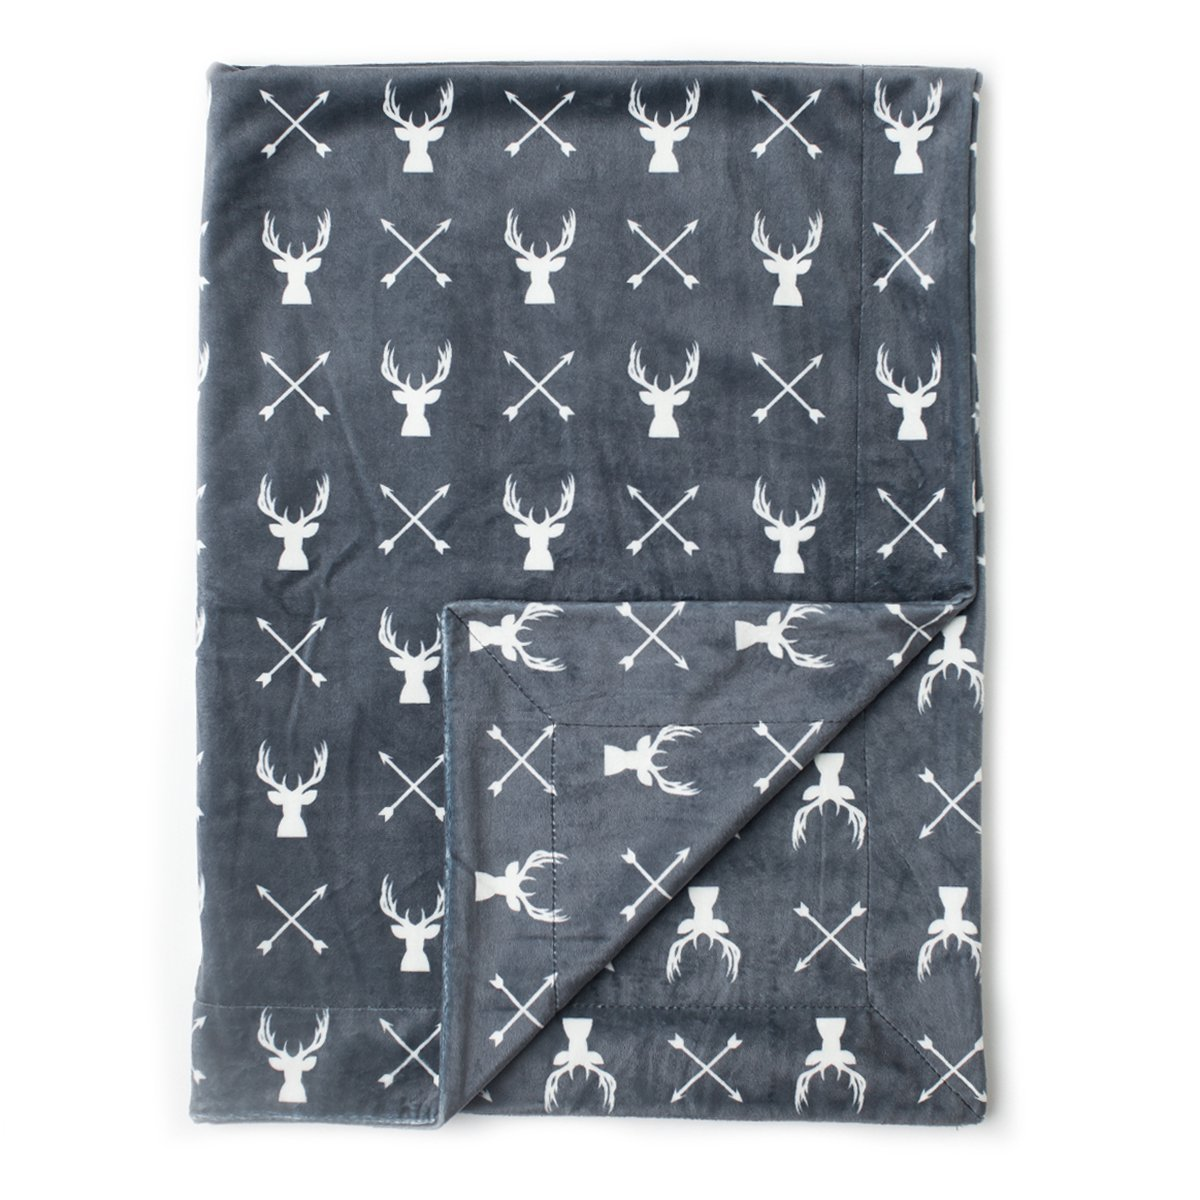 Kids N' Such Minky Baby Blanket 30'' x 40'' - Deer - Soft Swaddle Blanket for Newborns and Toddlers - Best for Boy Or Girl Crib Bedding, Nursery, and Security - Plush Double Layer Fleece Fabric